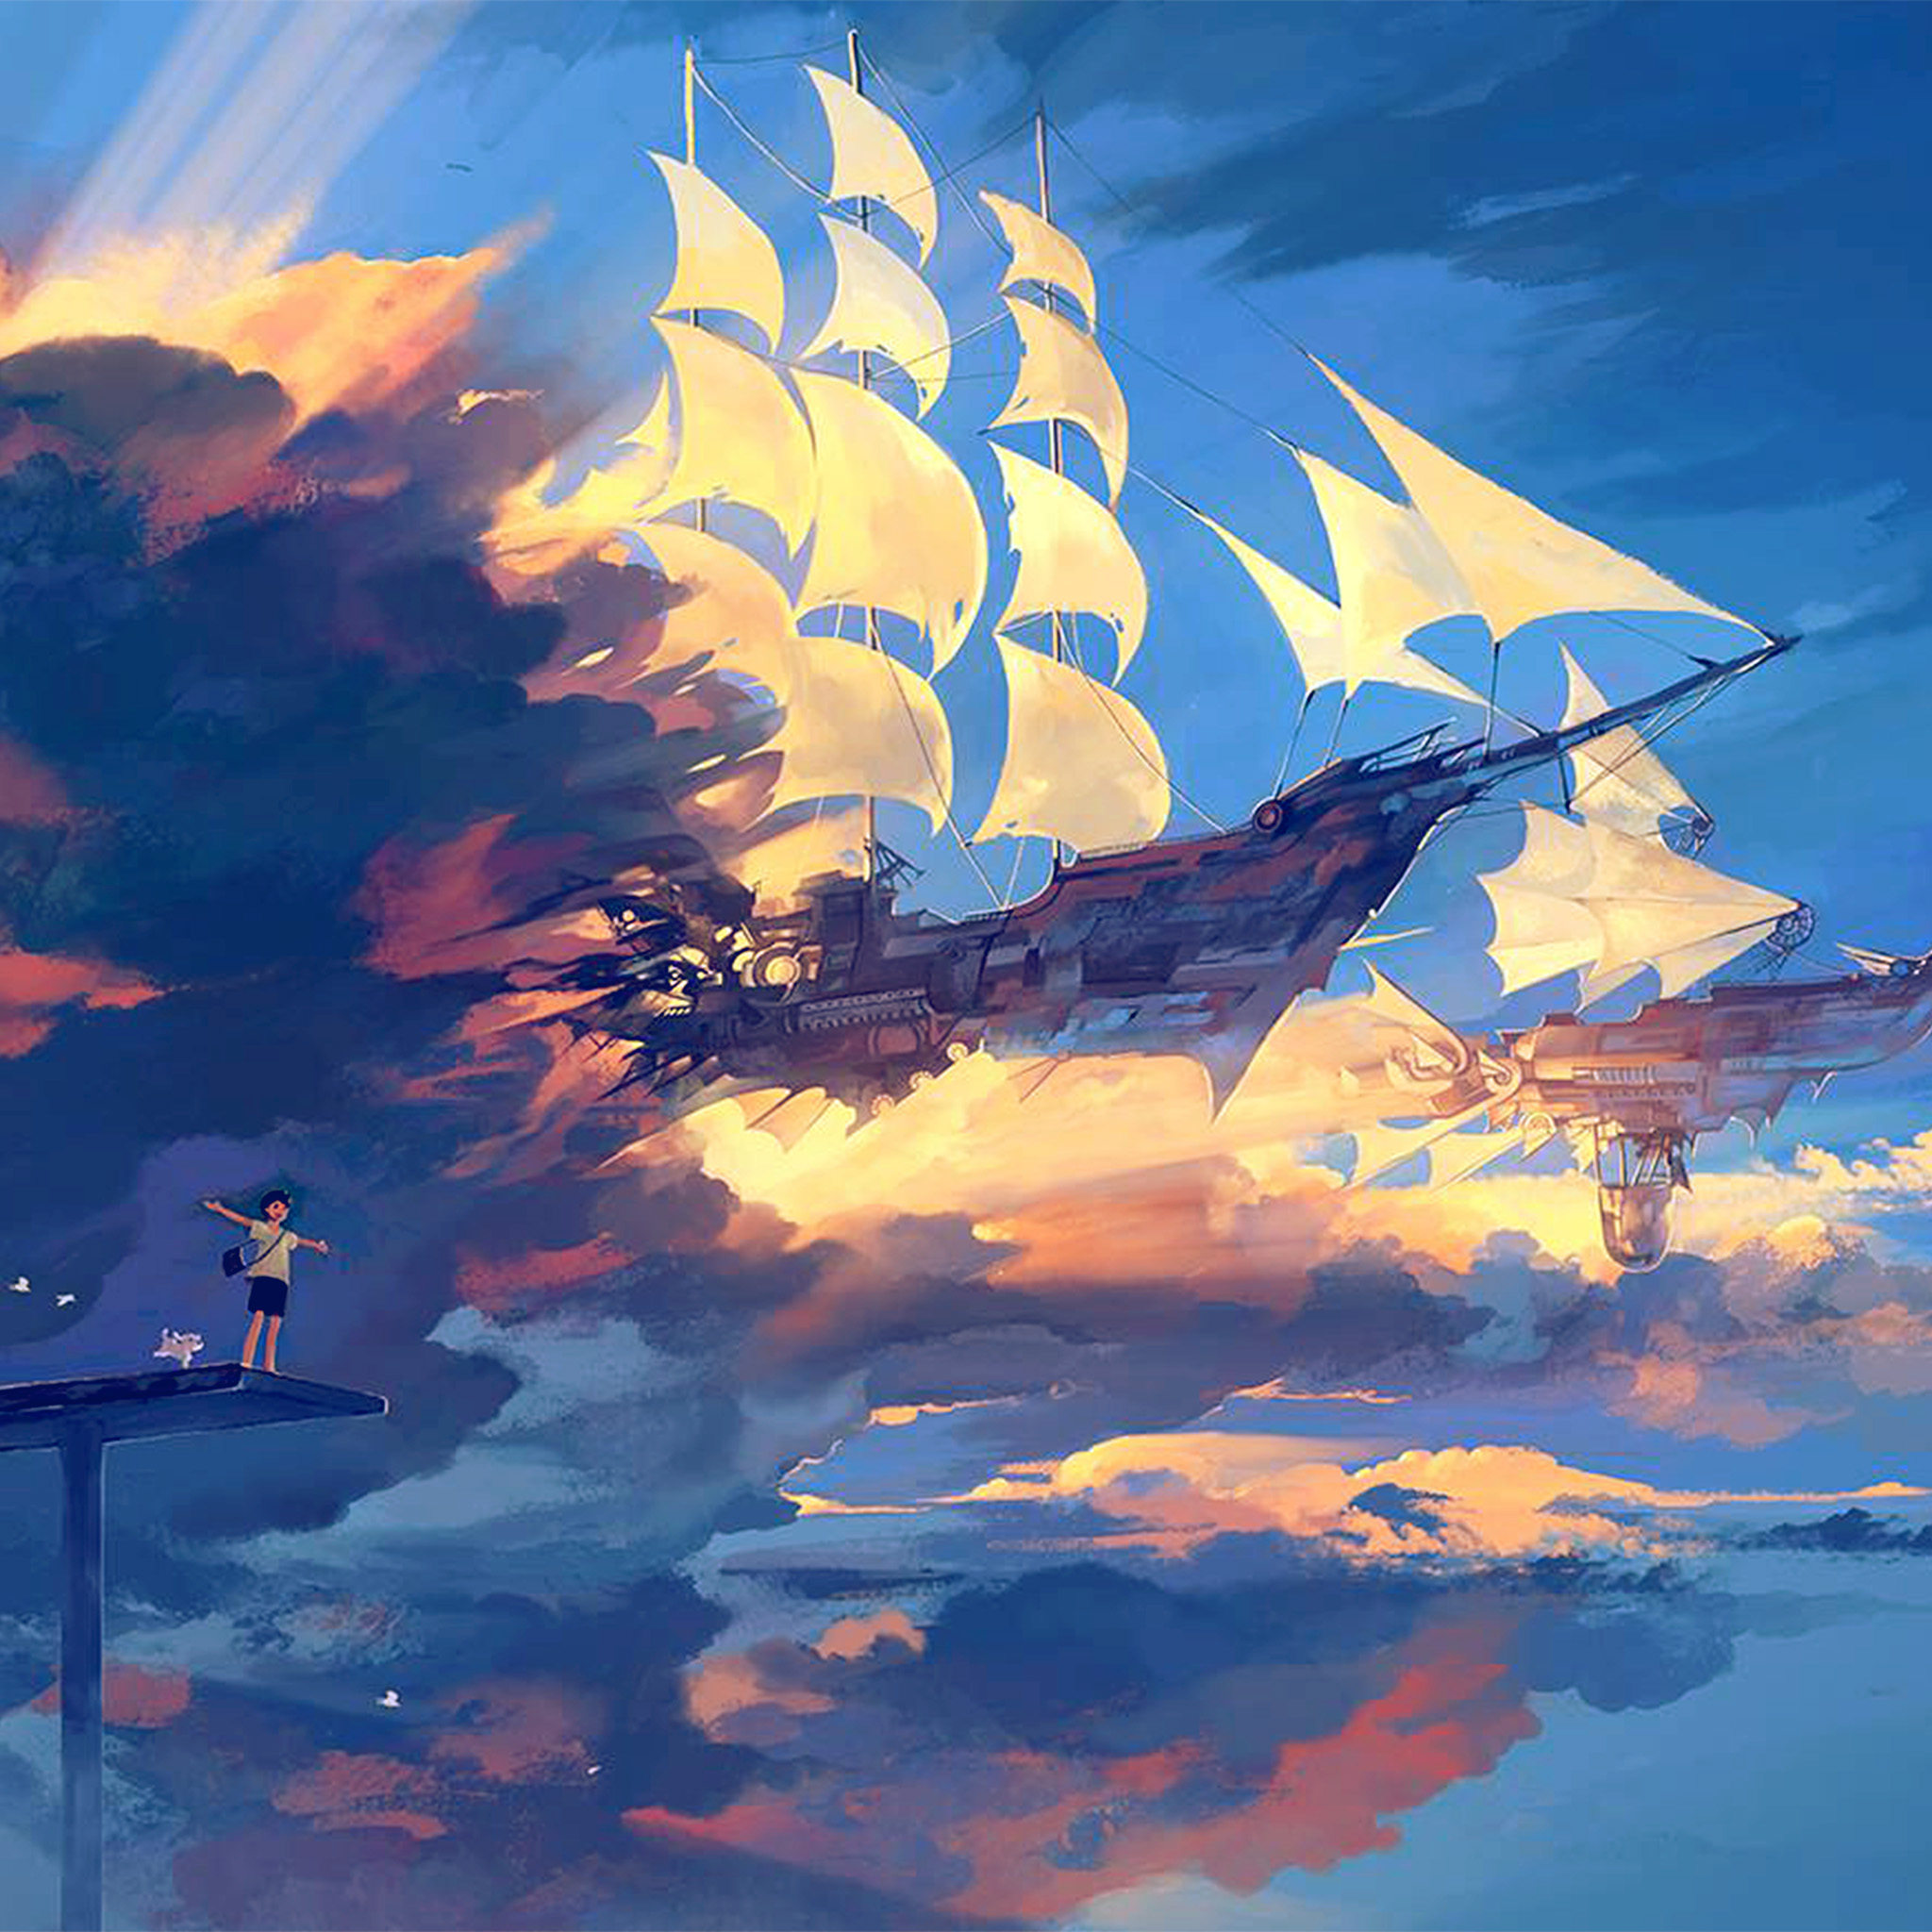 Cell Wallpaper Hd Illustration Fall Az68 Fly Ship Anime Illustration Art Blue Wallpaper